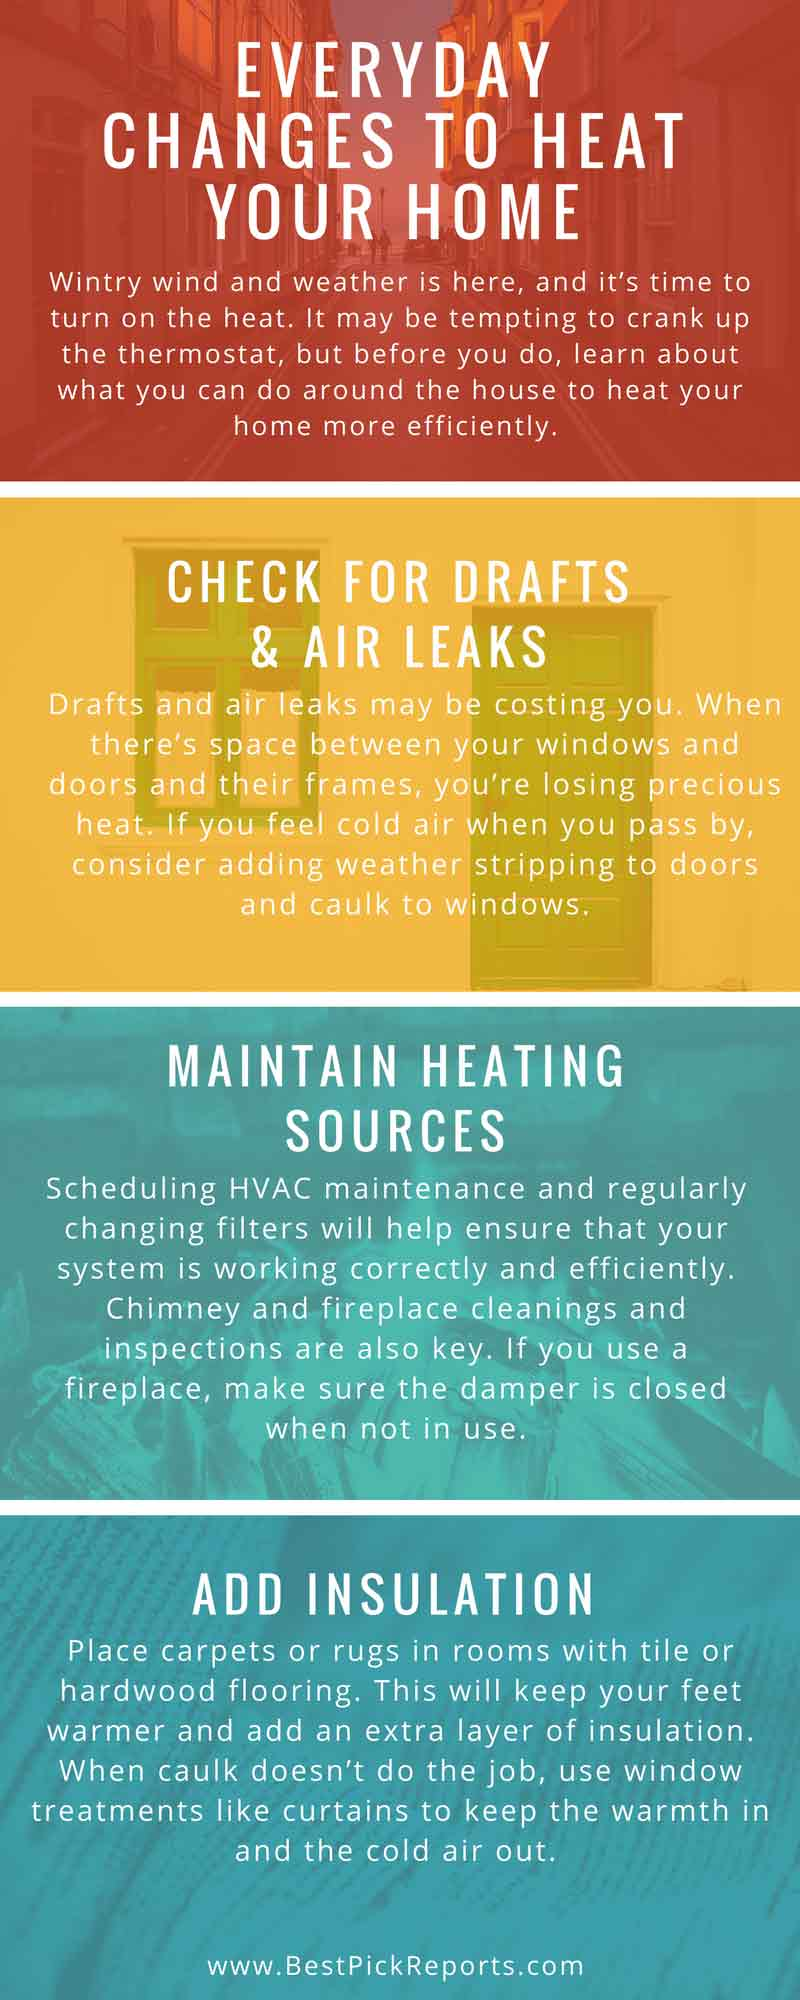 Infographic on Everyday Changes to Heat Your Home